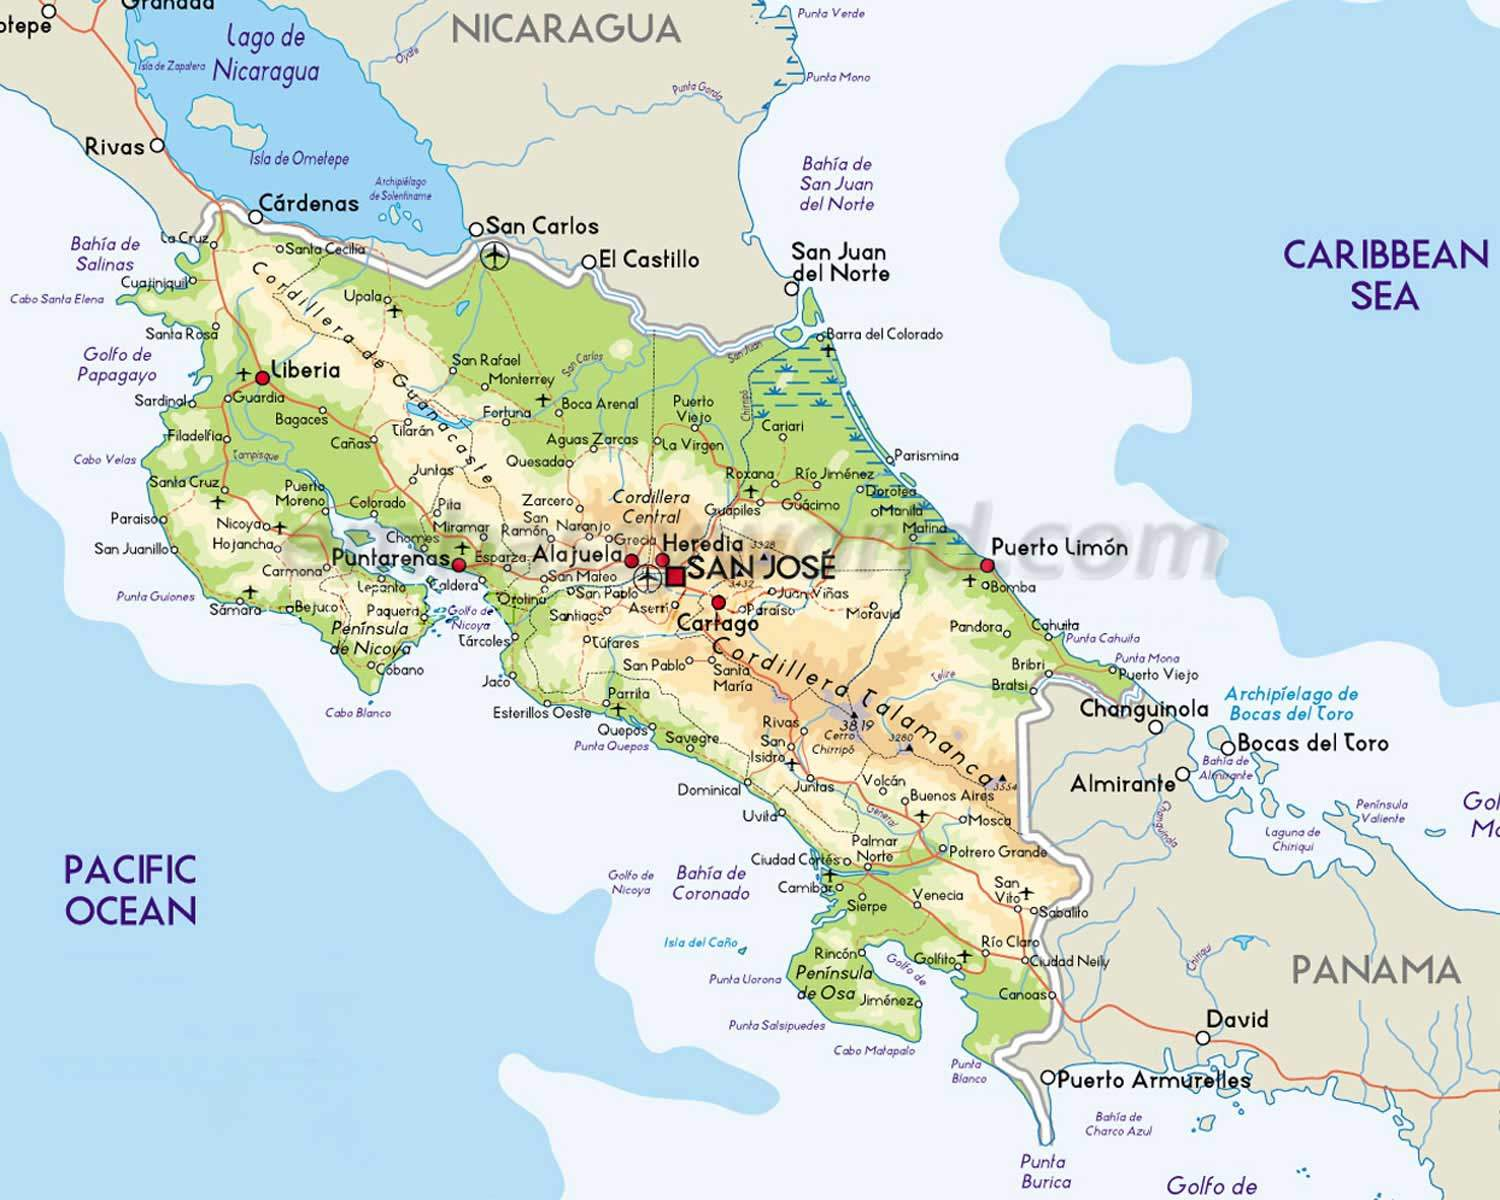 Costa Rica Maps - Every Map You Need for Your Trip to Costa Rica